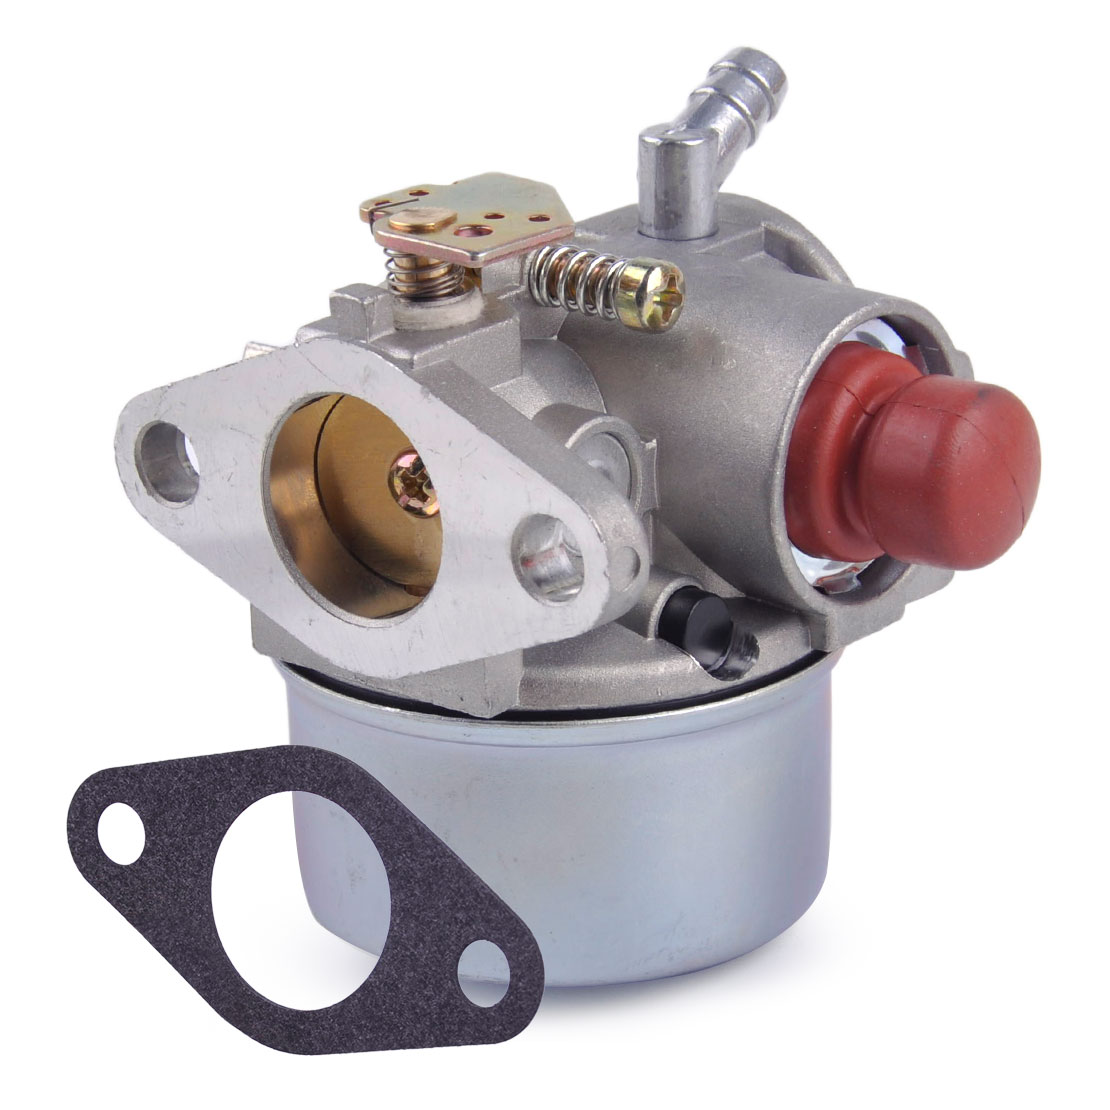 LETAOSK Carburetor Carb fit for Tecumseh LV195EA LV195XA LEV105 LEV120 640350 640303 640271